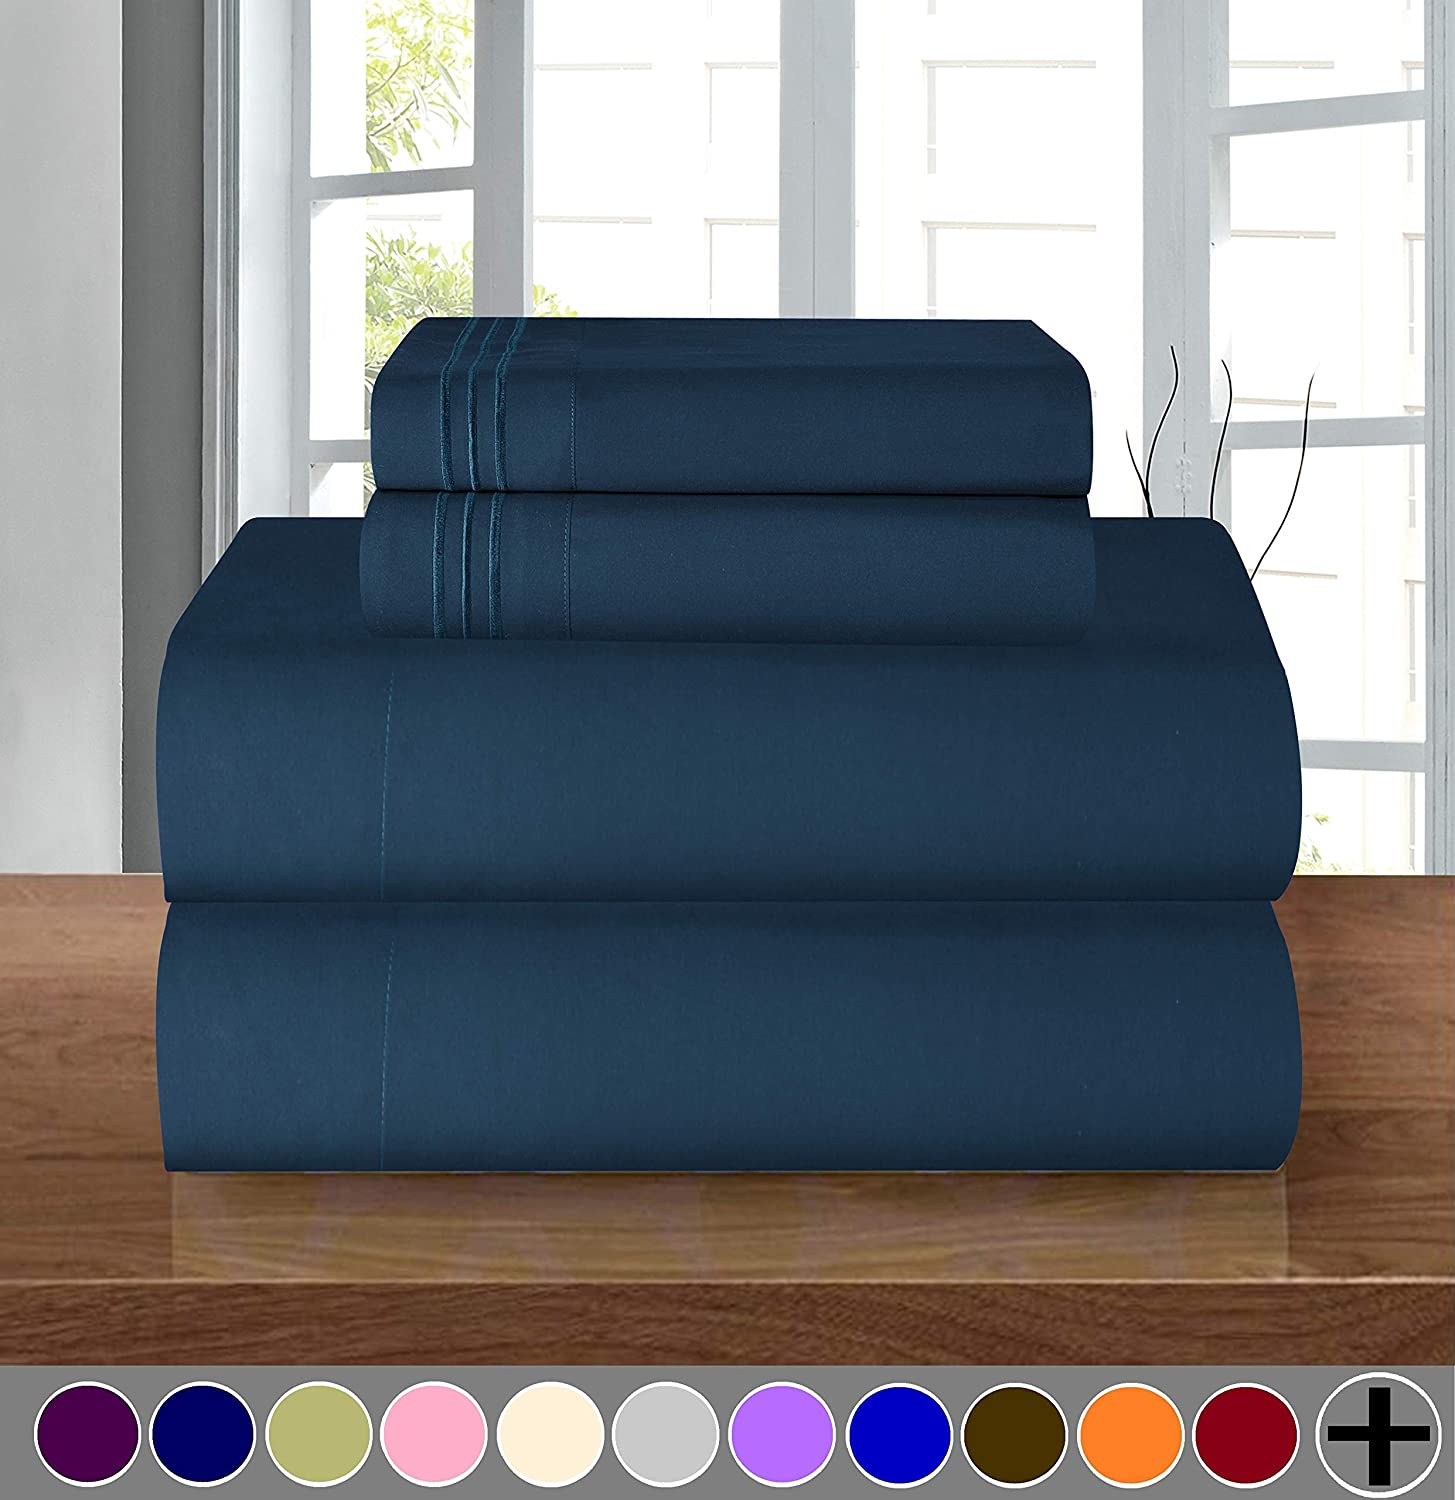 Elegant Comfort Luxury Soft 1500 Thread Count Egyptian 4-Piece Premium Hotel Quality Wrinkle and Fade Resistant Coziest Bedding Set, Easy All Around Elastic Fitted Sheet, Deep Pocket up to 16inch, King, Navy Blue